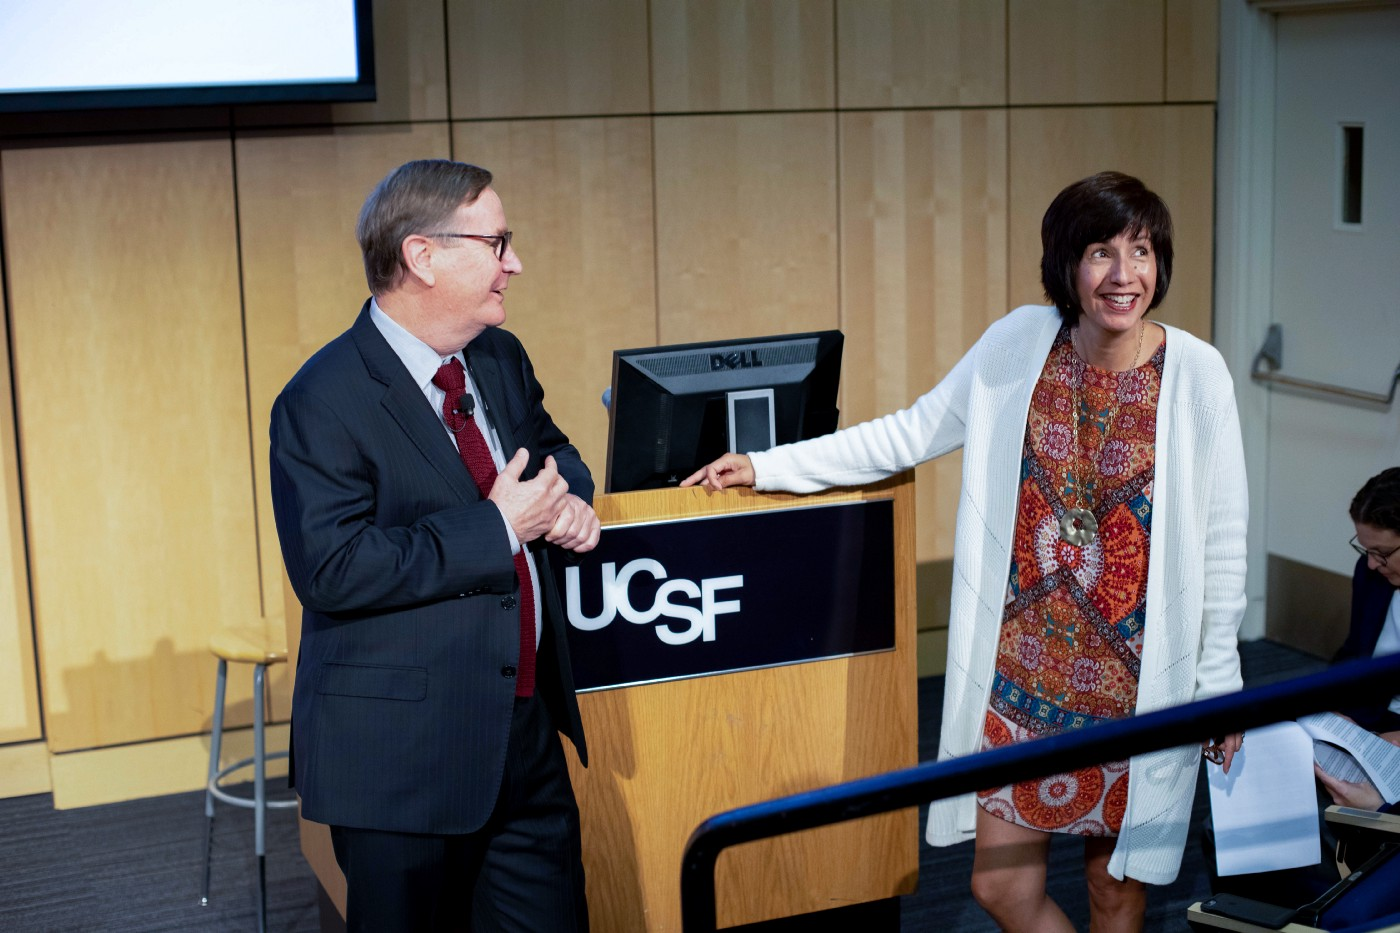 UCSF Women Reflect on Gender, Work and Science - UC San Francisco